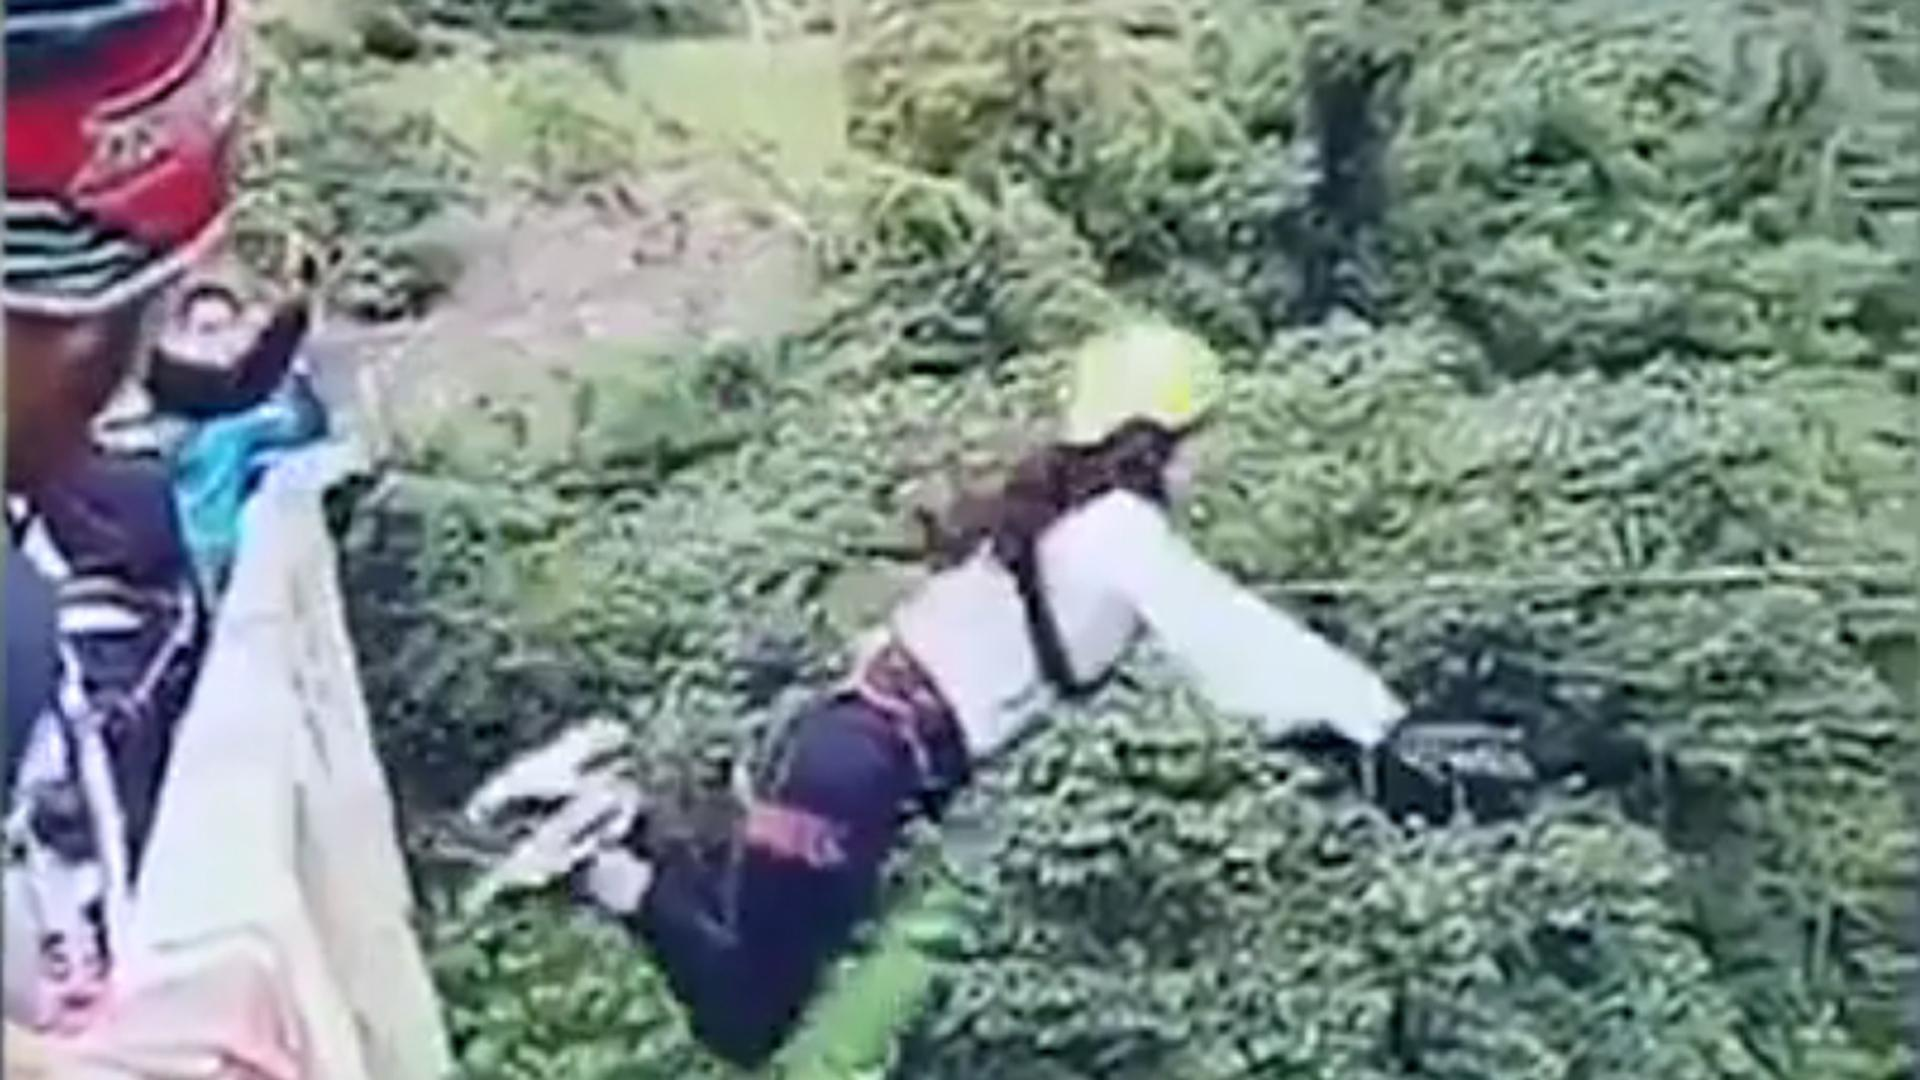 Woman CRASHES to the Ground in Horrific Bungee Jumping Accident (WARNING: Graphic)